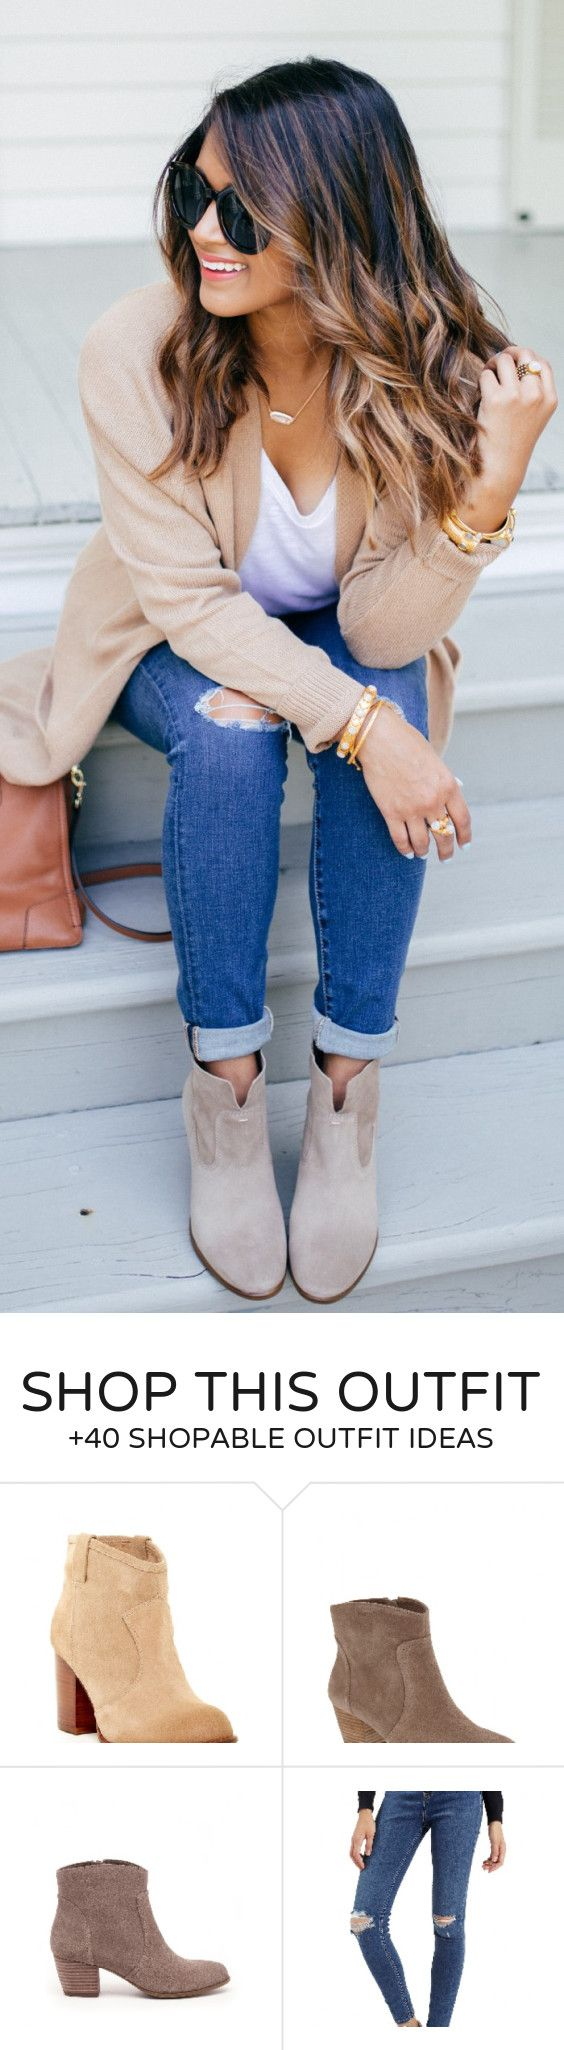 #spring #fashion / Camel Cardigan / White Tee / Ripped Skinny Jeans / Grey Suede Booties